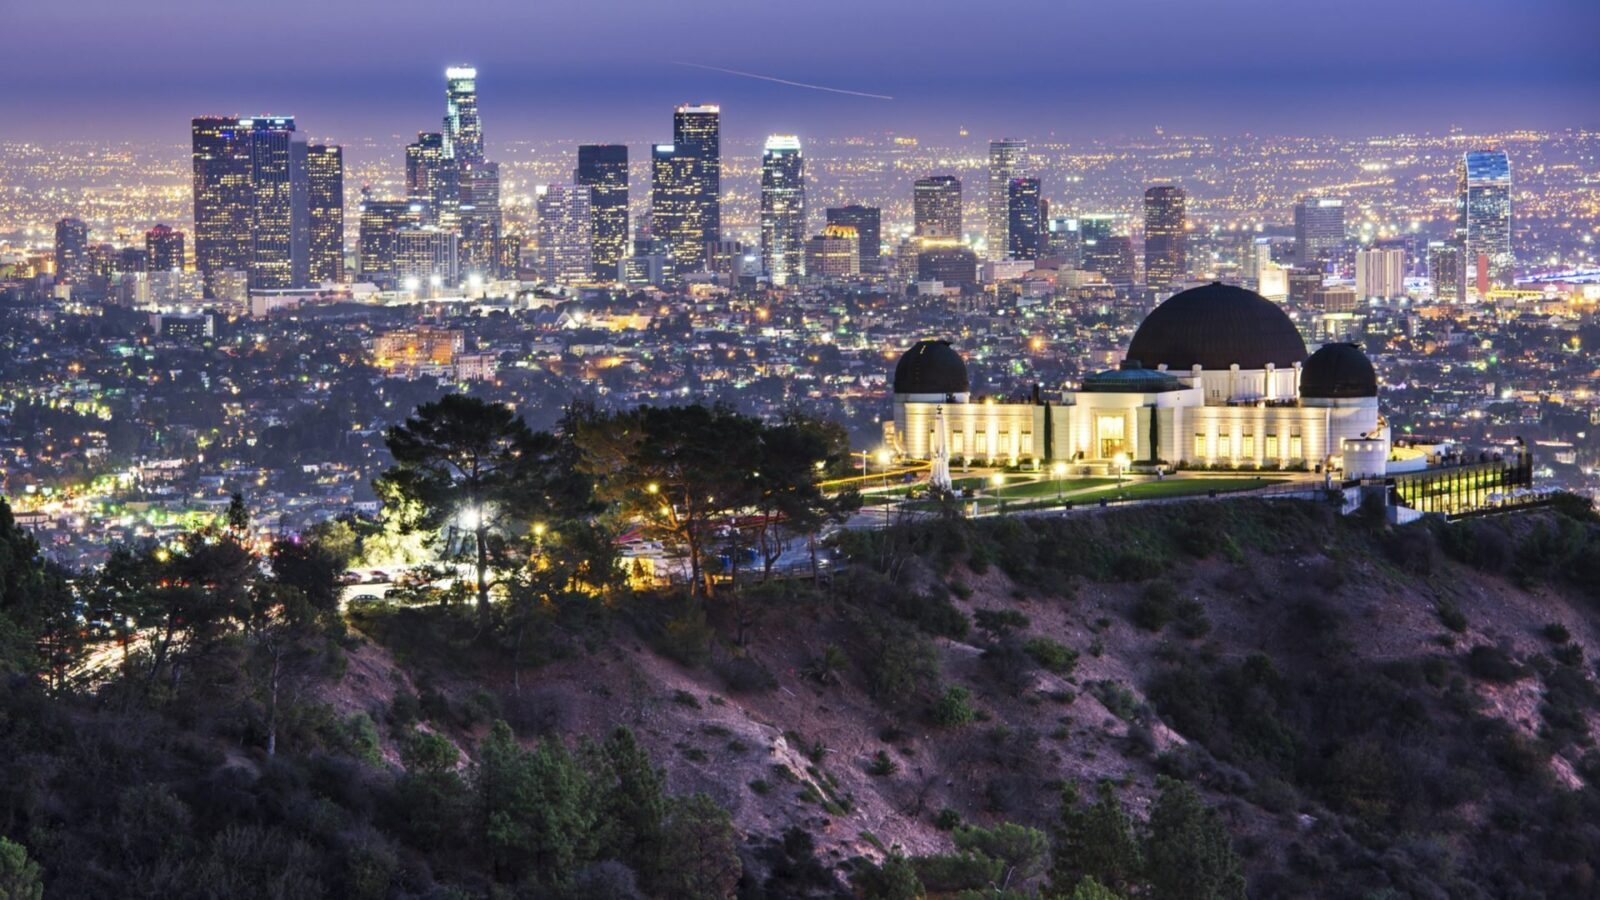 Orbic Air Helicopter Tour over Los Angeles